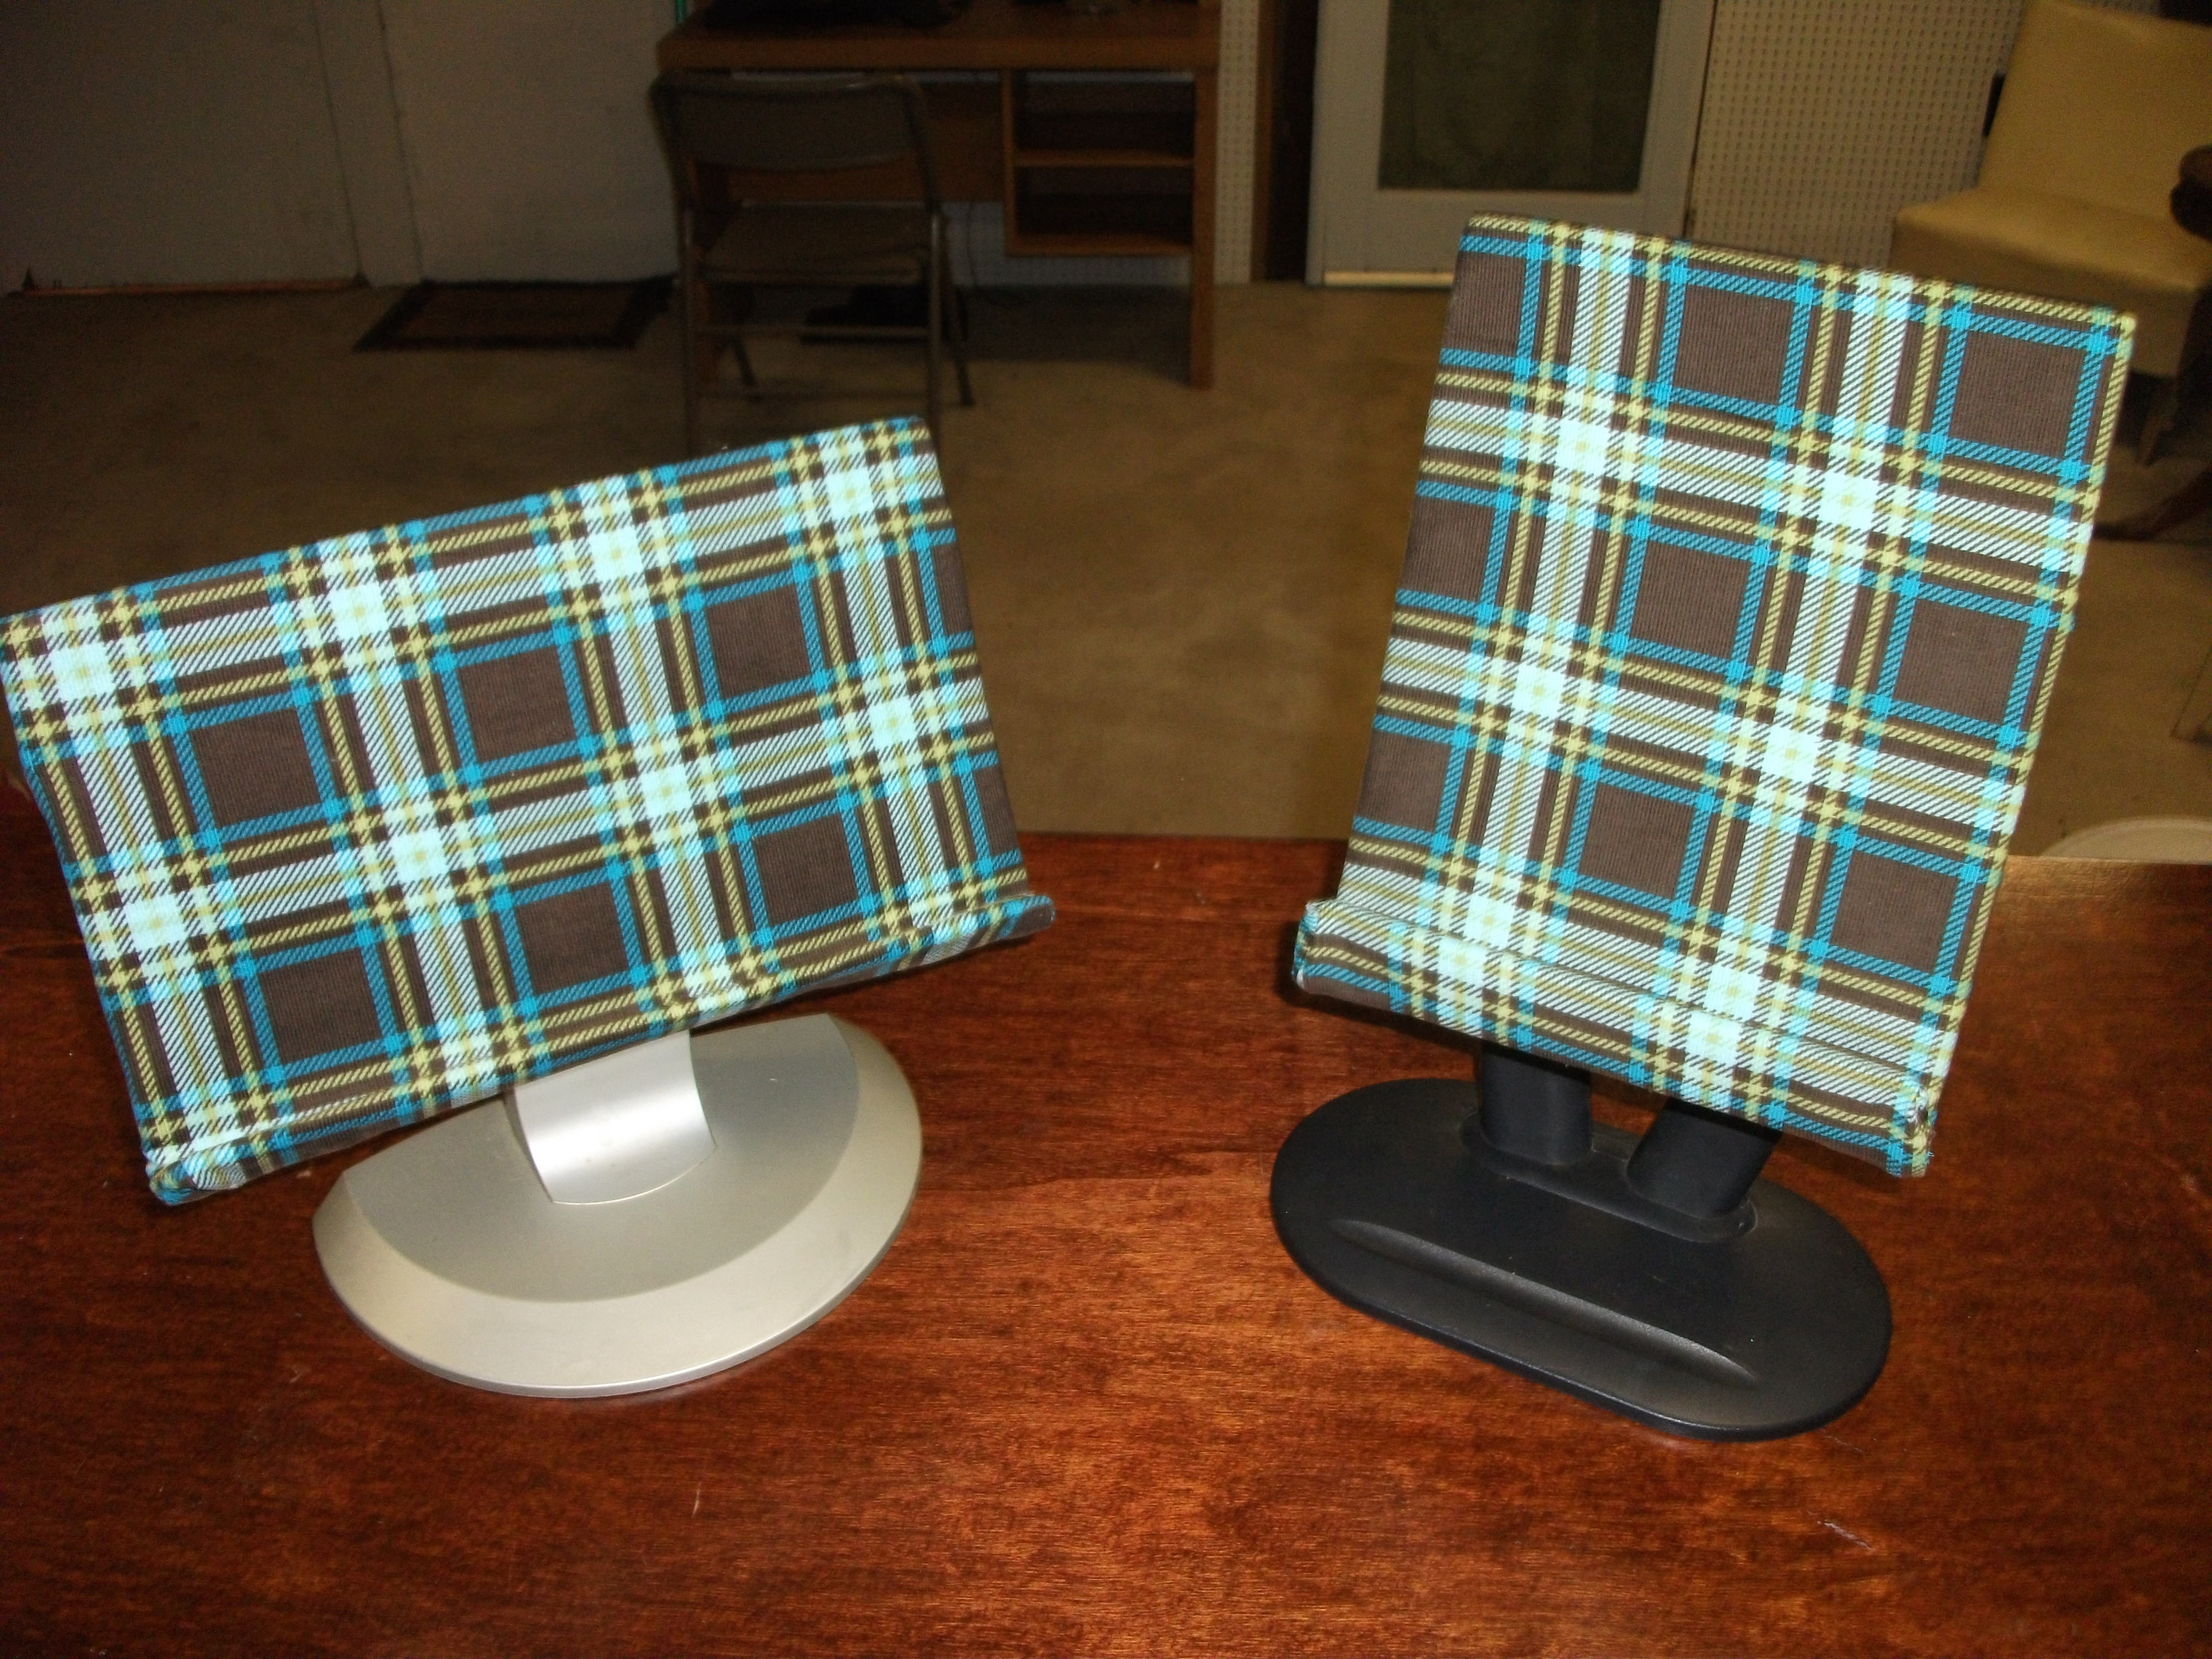 Picture of Homeade Tablet Stands Done in Style